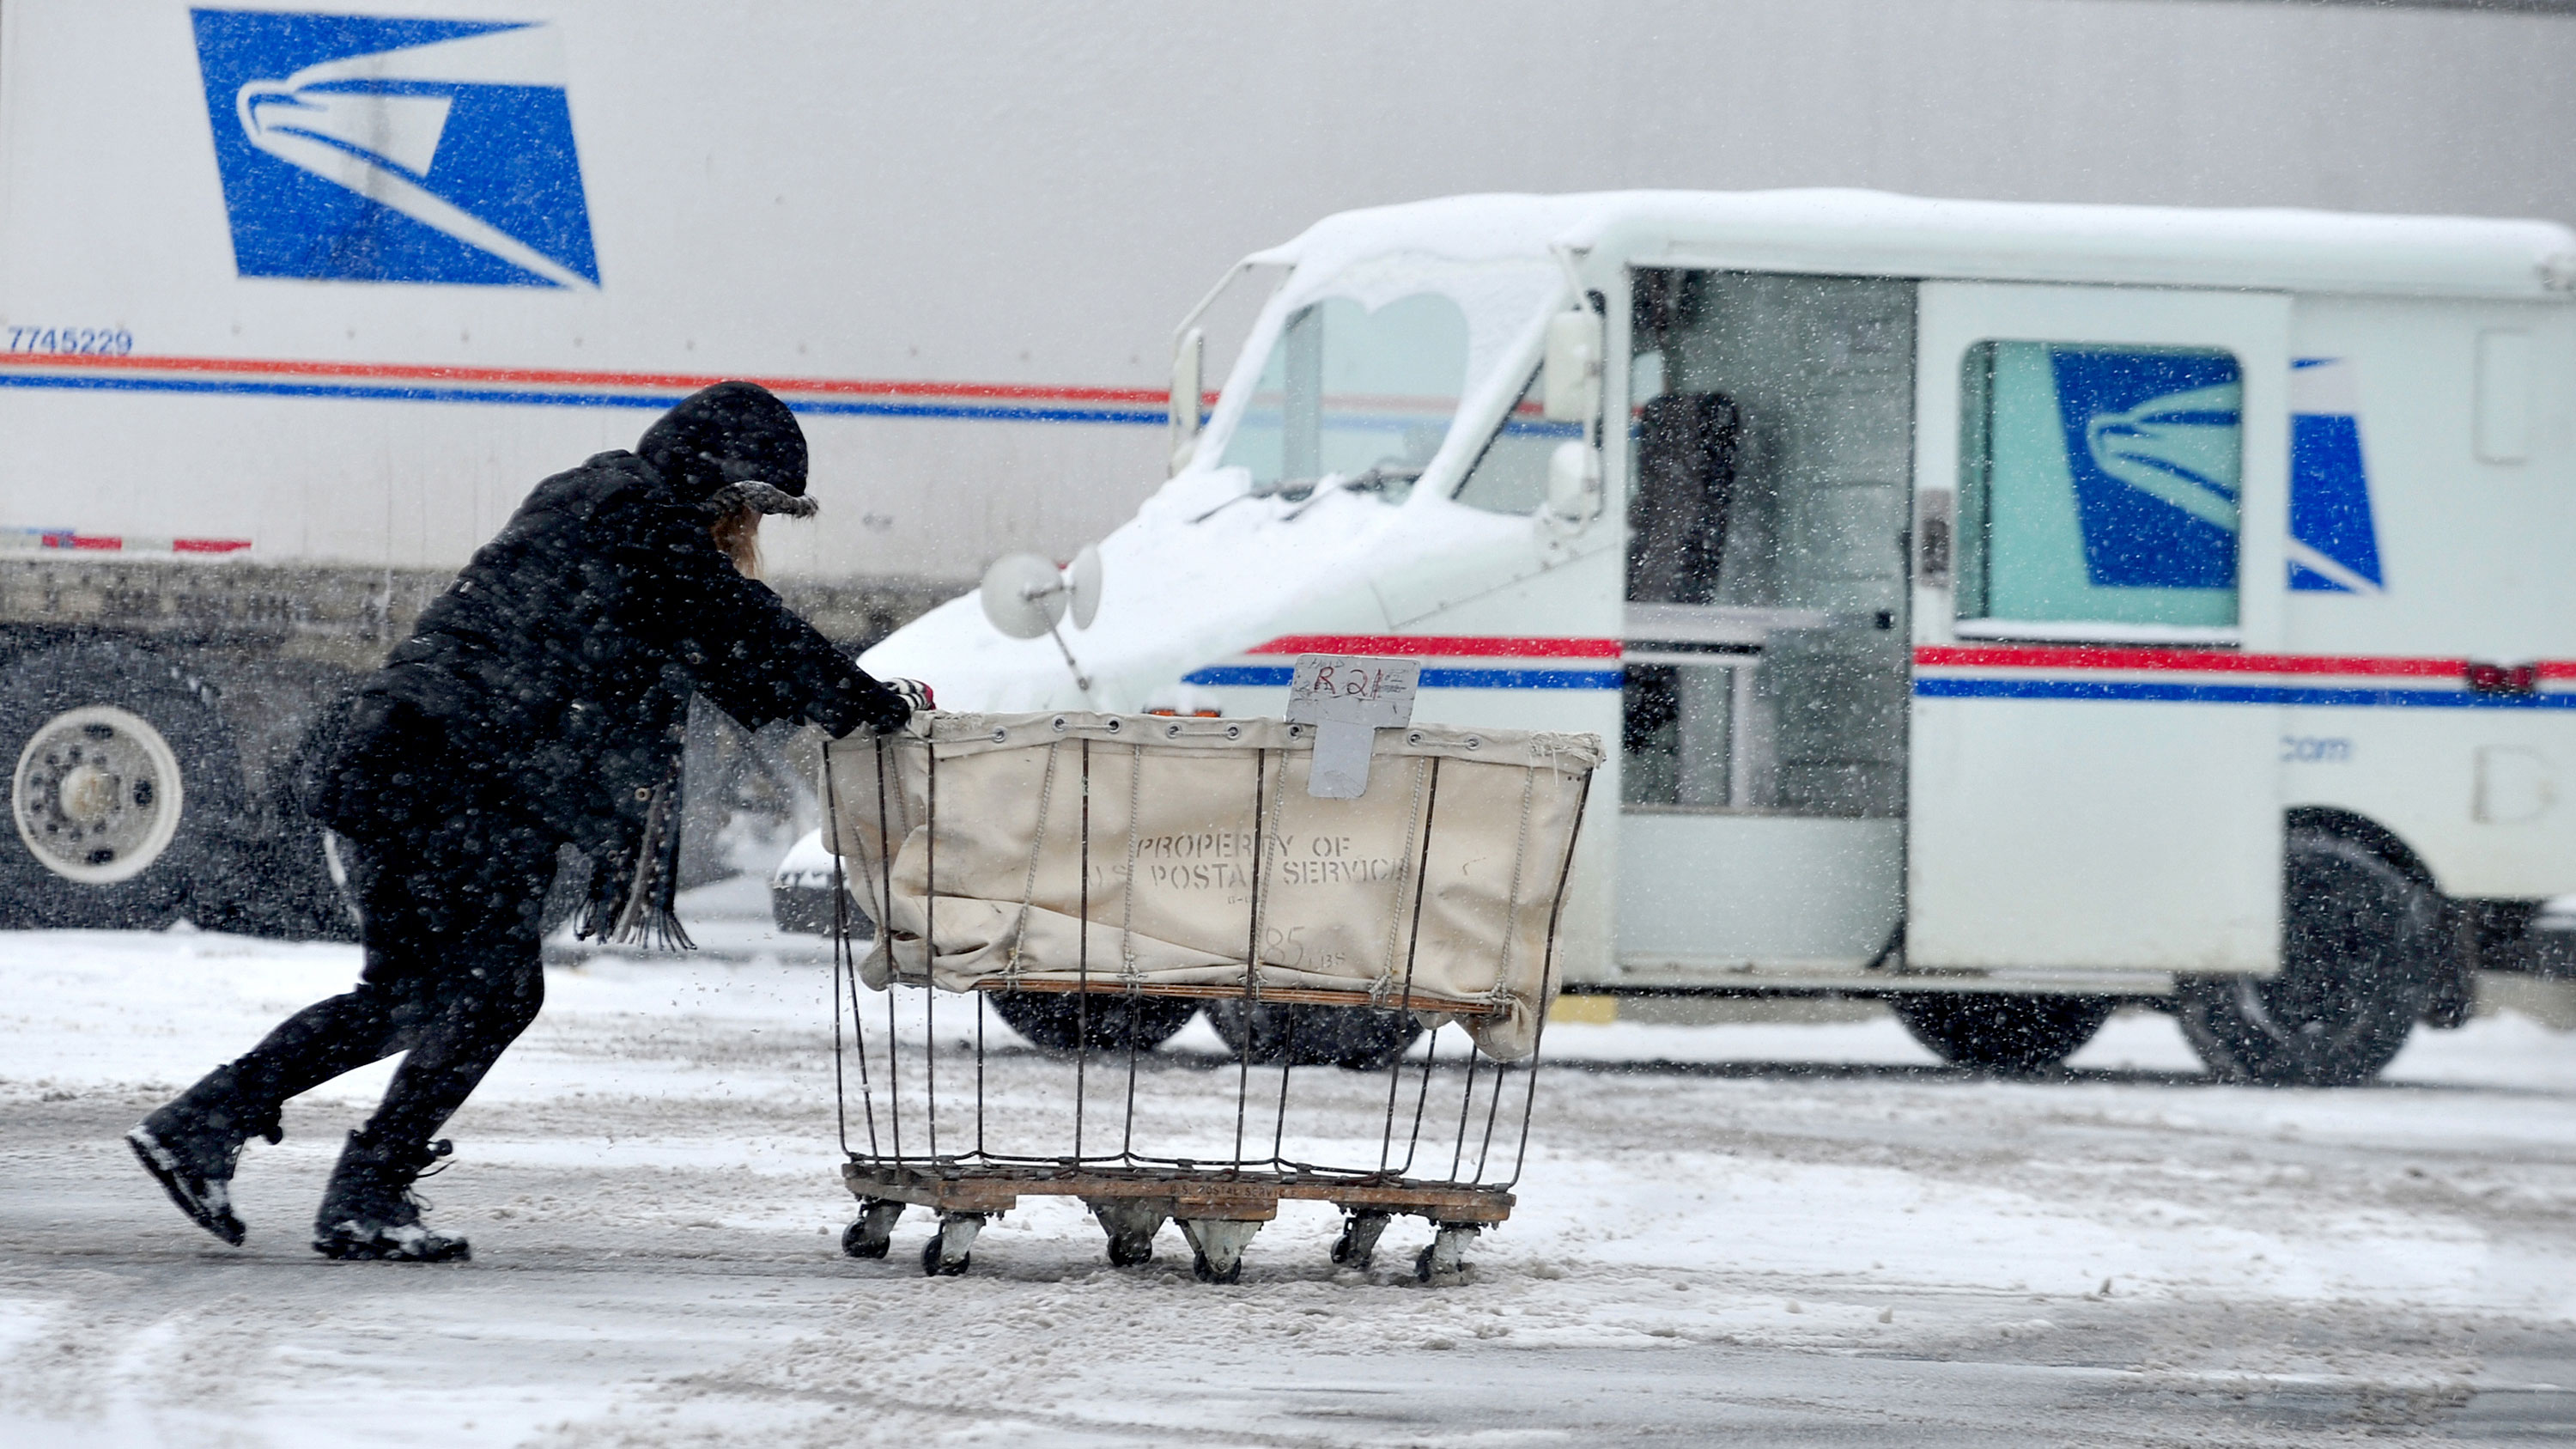 USPS carrier Stephanie Starr, of Seymour, pushes a mail cart from her carrier vehicle to the loading dock area of the Columbus, Ind. Post Office, Tuesday, Feb. 9, 2010. Starr has been working as a carrier for eight years and said that although she is used to delivering in inclimate weather she said her rural route near Taylorsville takes about two hours longer to complete when there is heavy snow. (AP Photo/The Republic, Joel Philippsen)